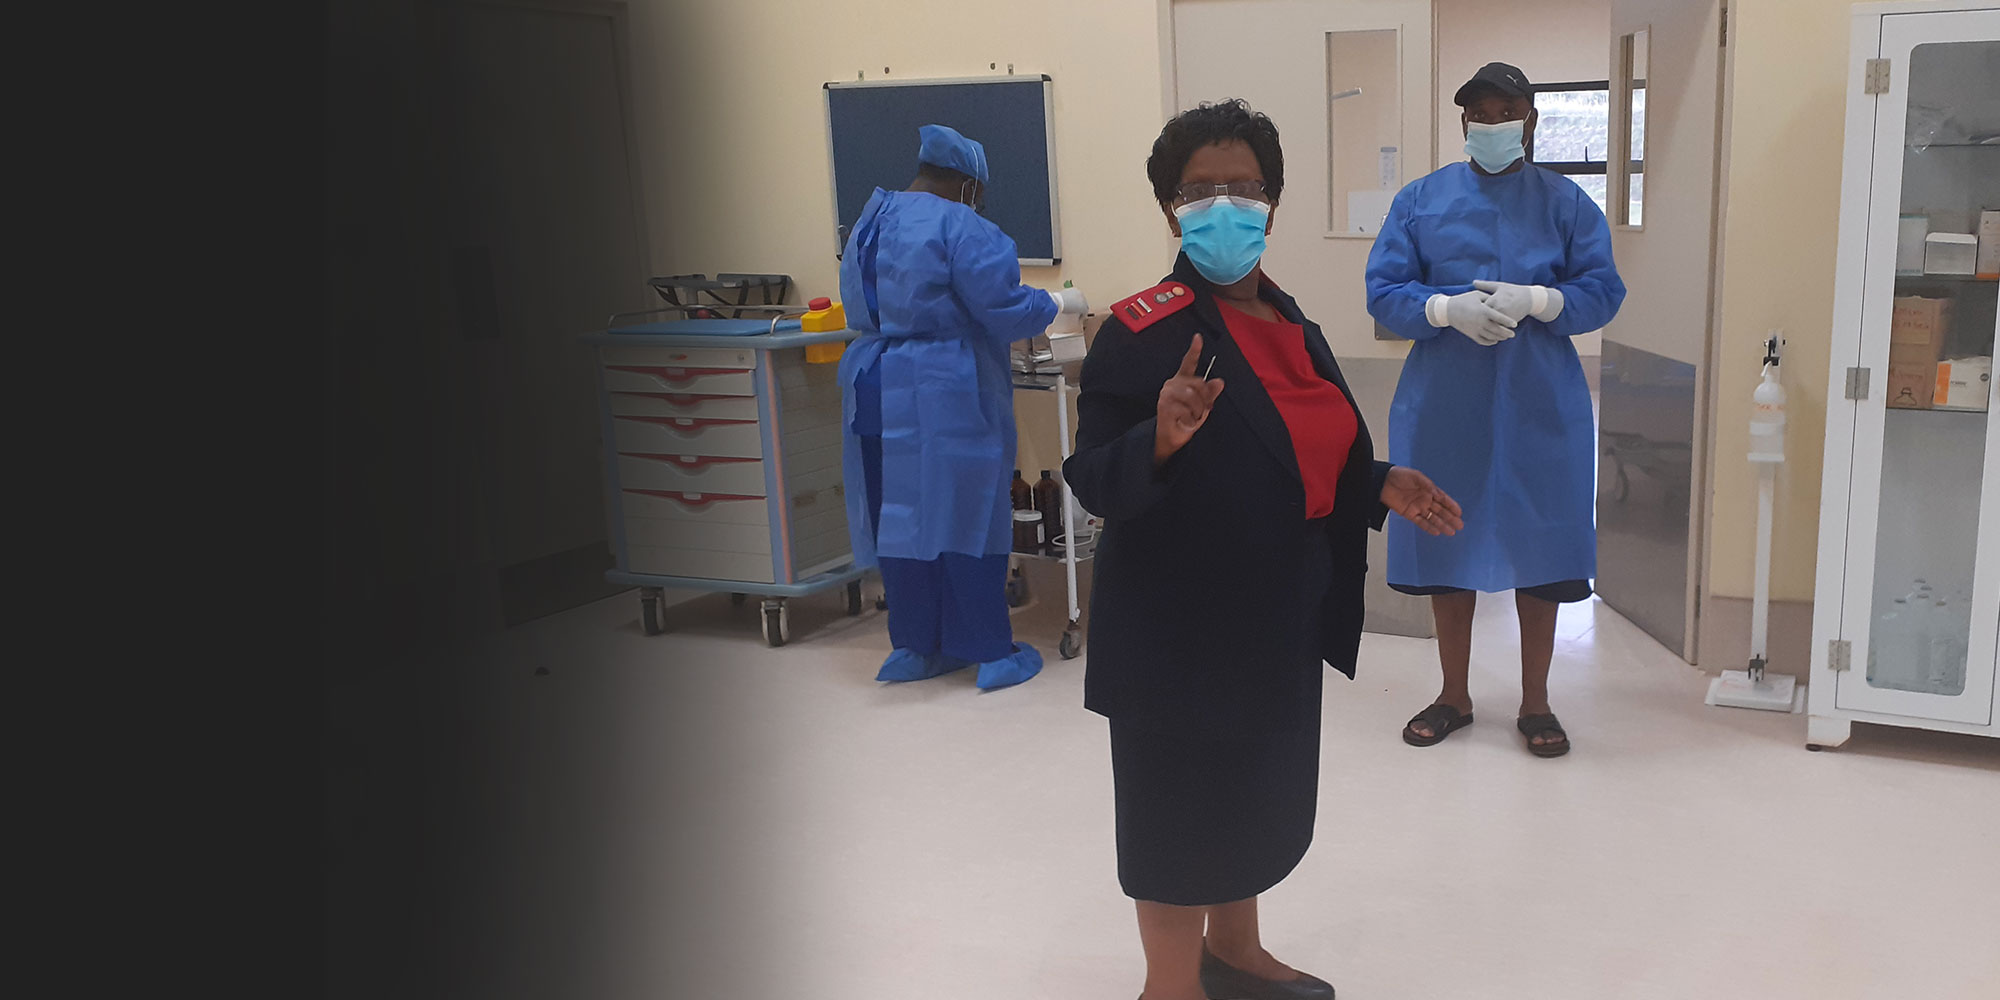 Matron Nurse Sibongile Simelane inspecting the emergency ward and staff prior to the arrival of a COVID-19 patient. Credit: Nonduduzo Kunene